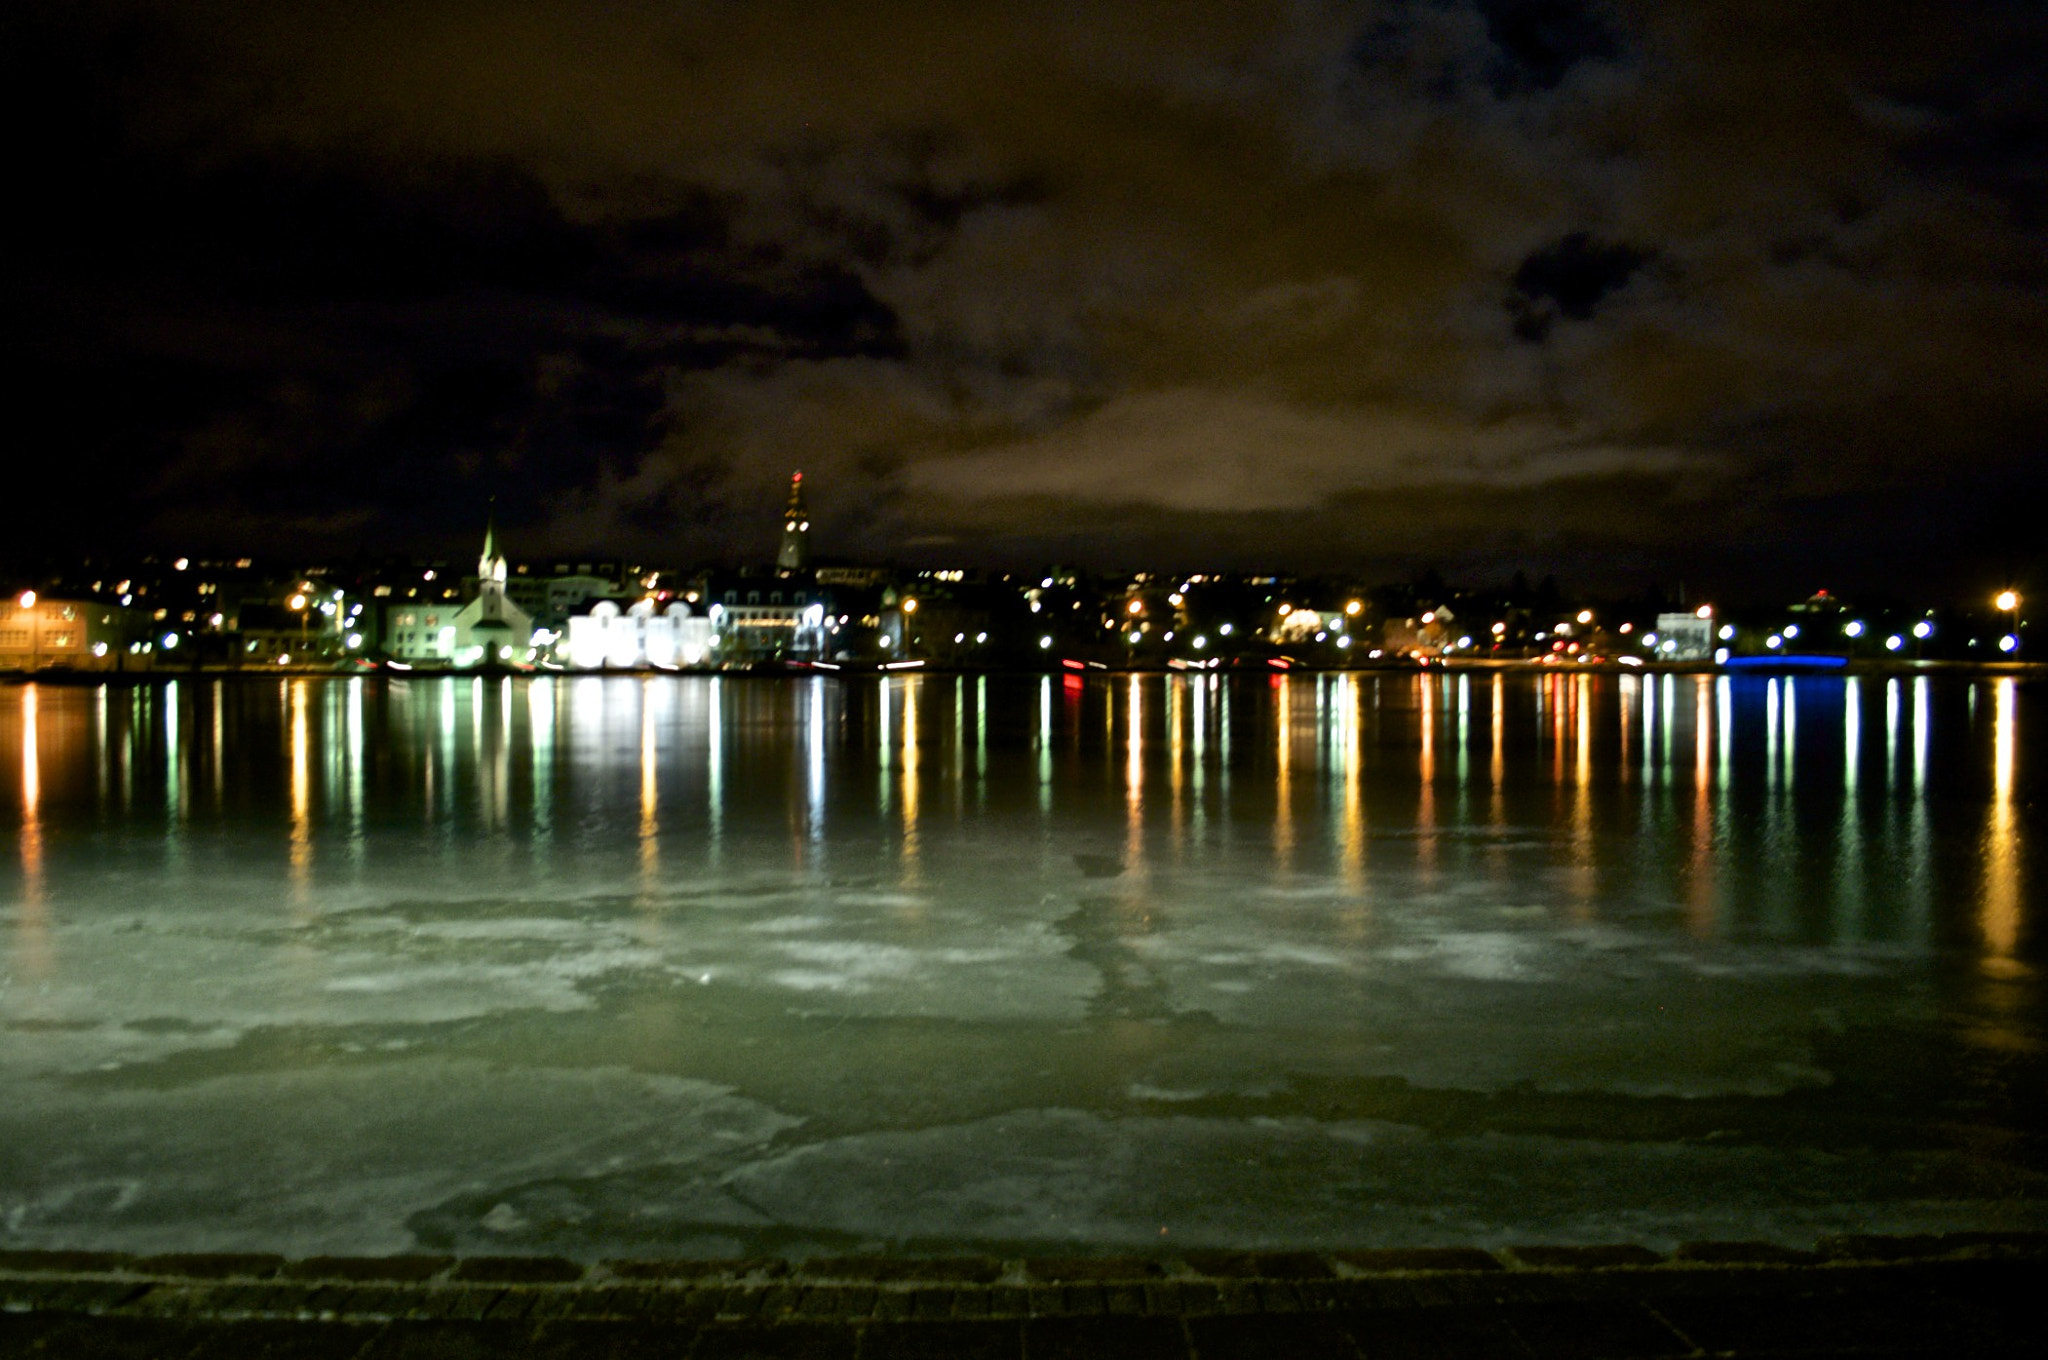 Photograph Reykjavik is freezing by Nick Larkins on 500px